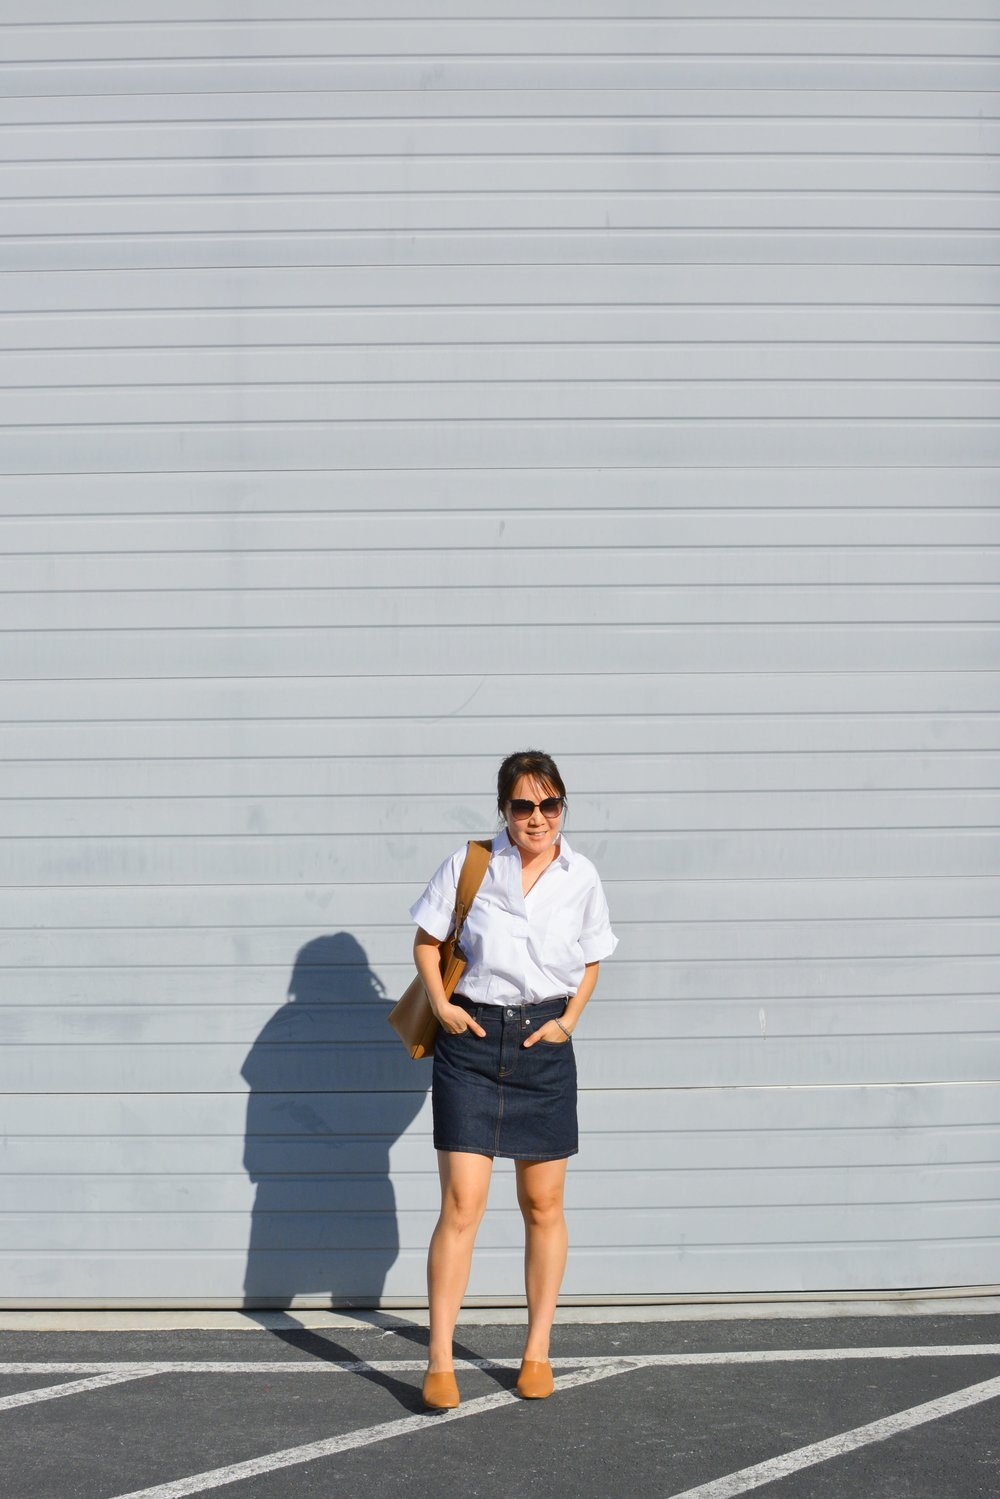 Everlane Review The The Denim Skirt (3 of 4)-min.jpg